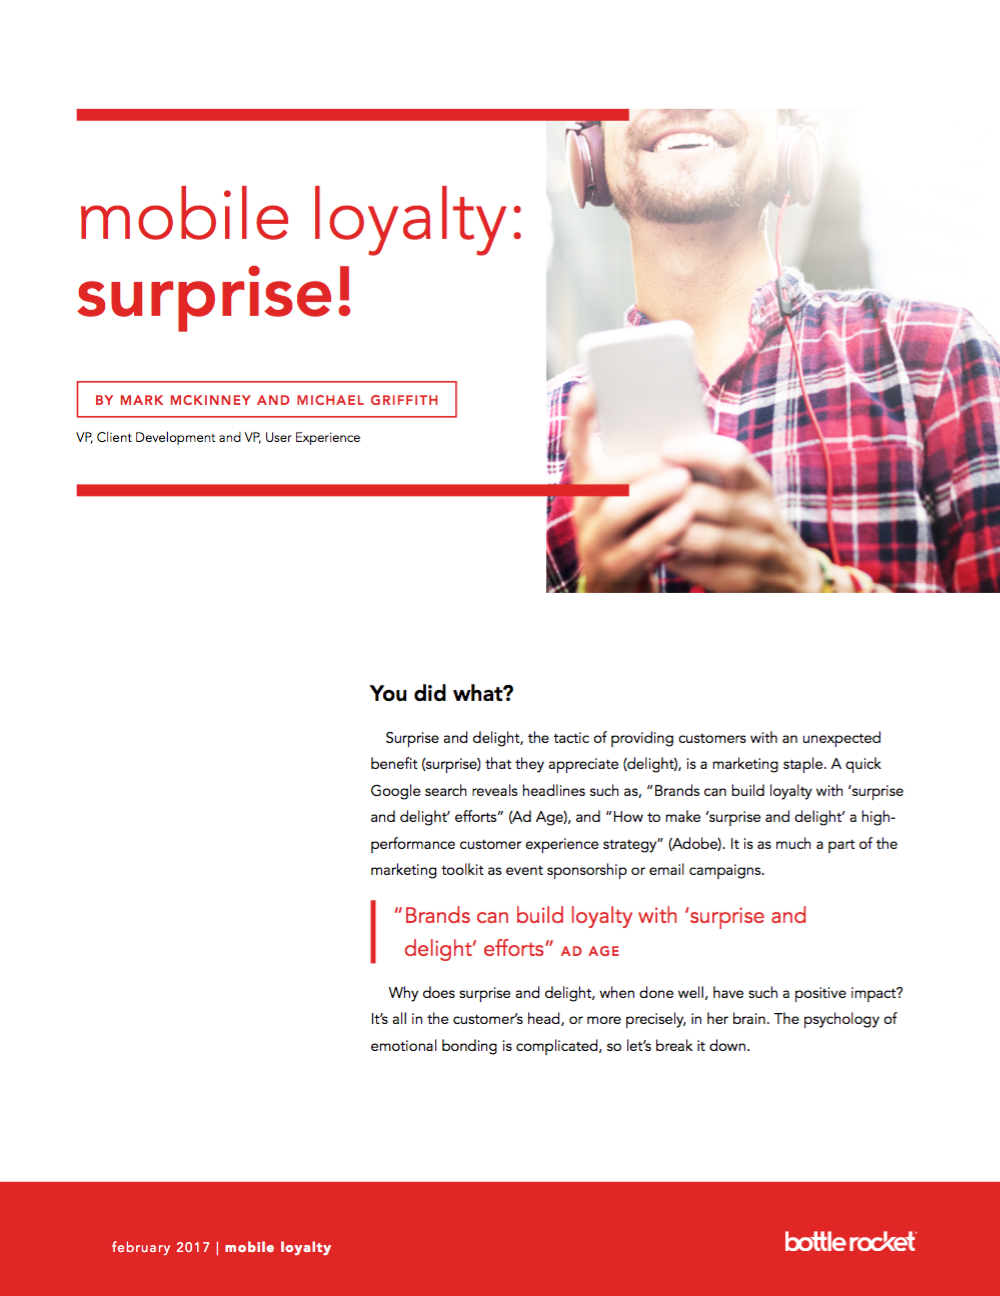 mobile-loyalty-surprise-bottle-rocket-studios-white-paper-screenshot